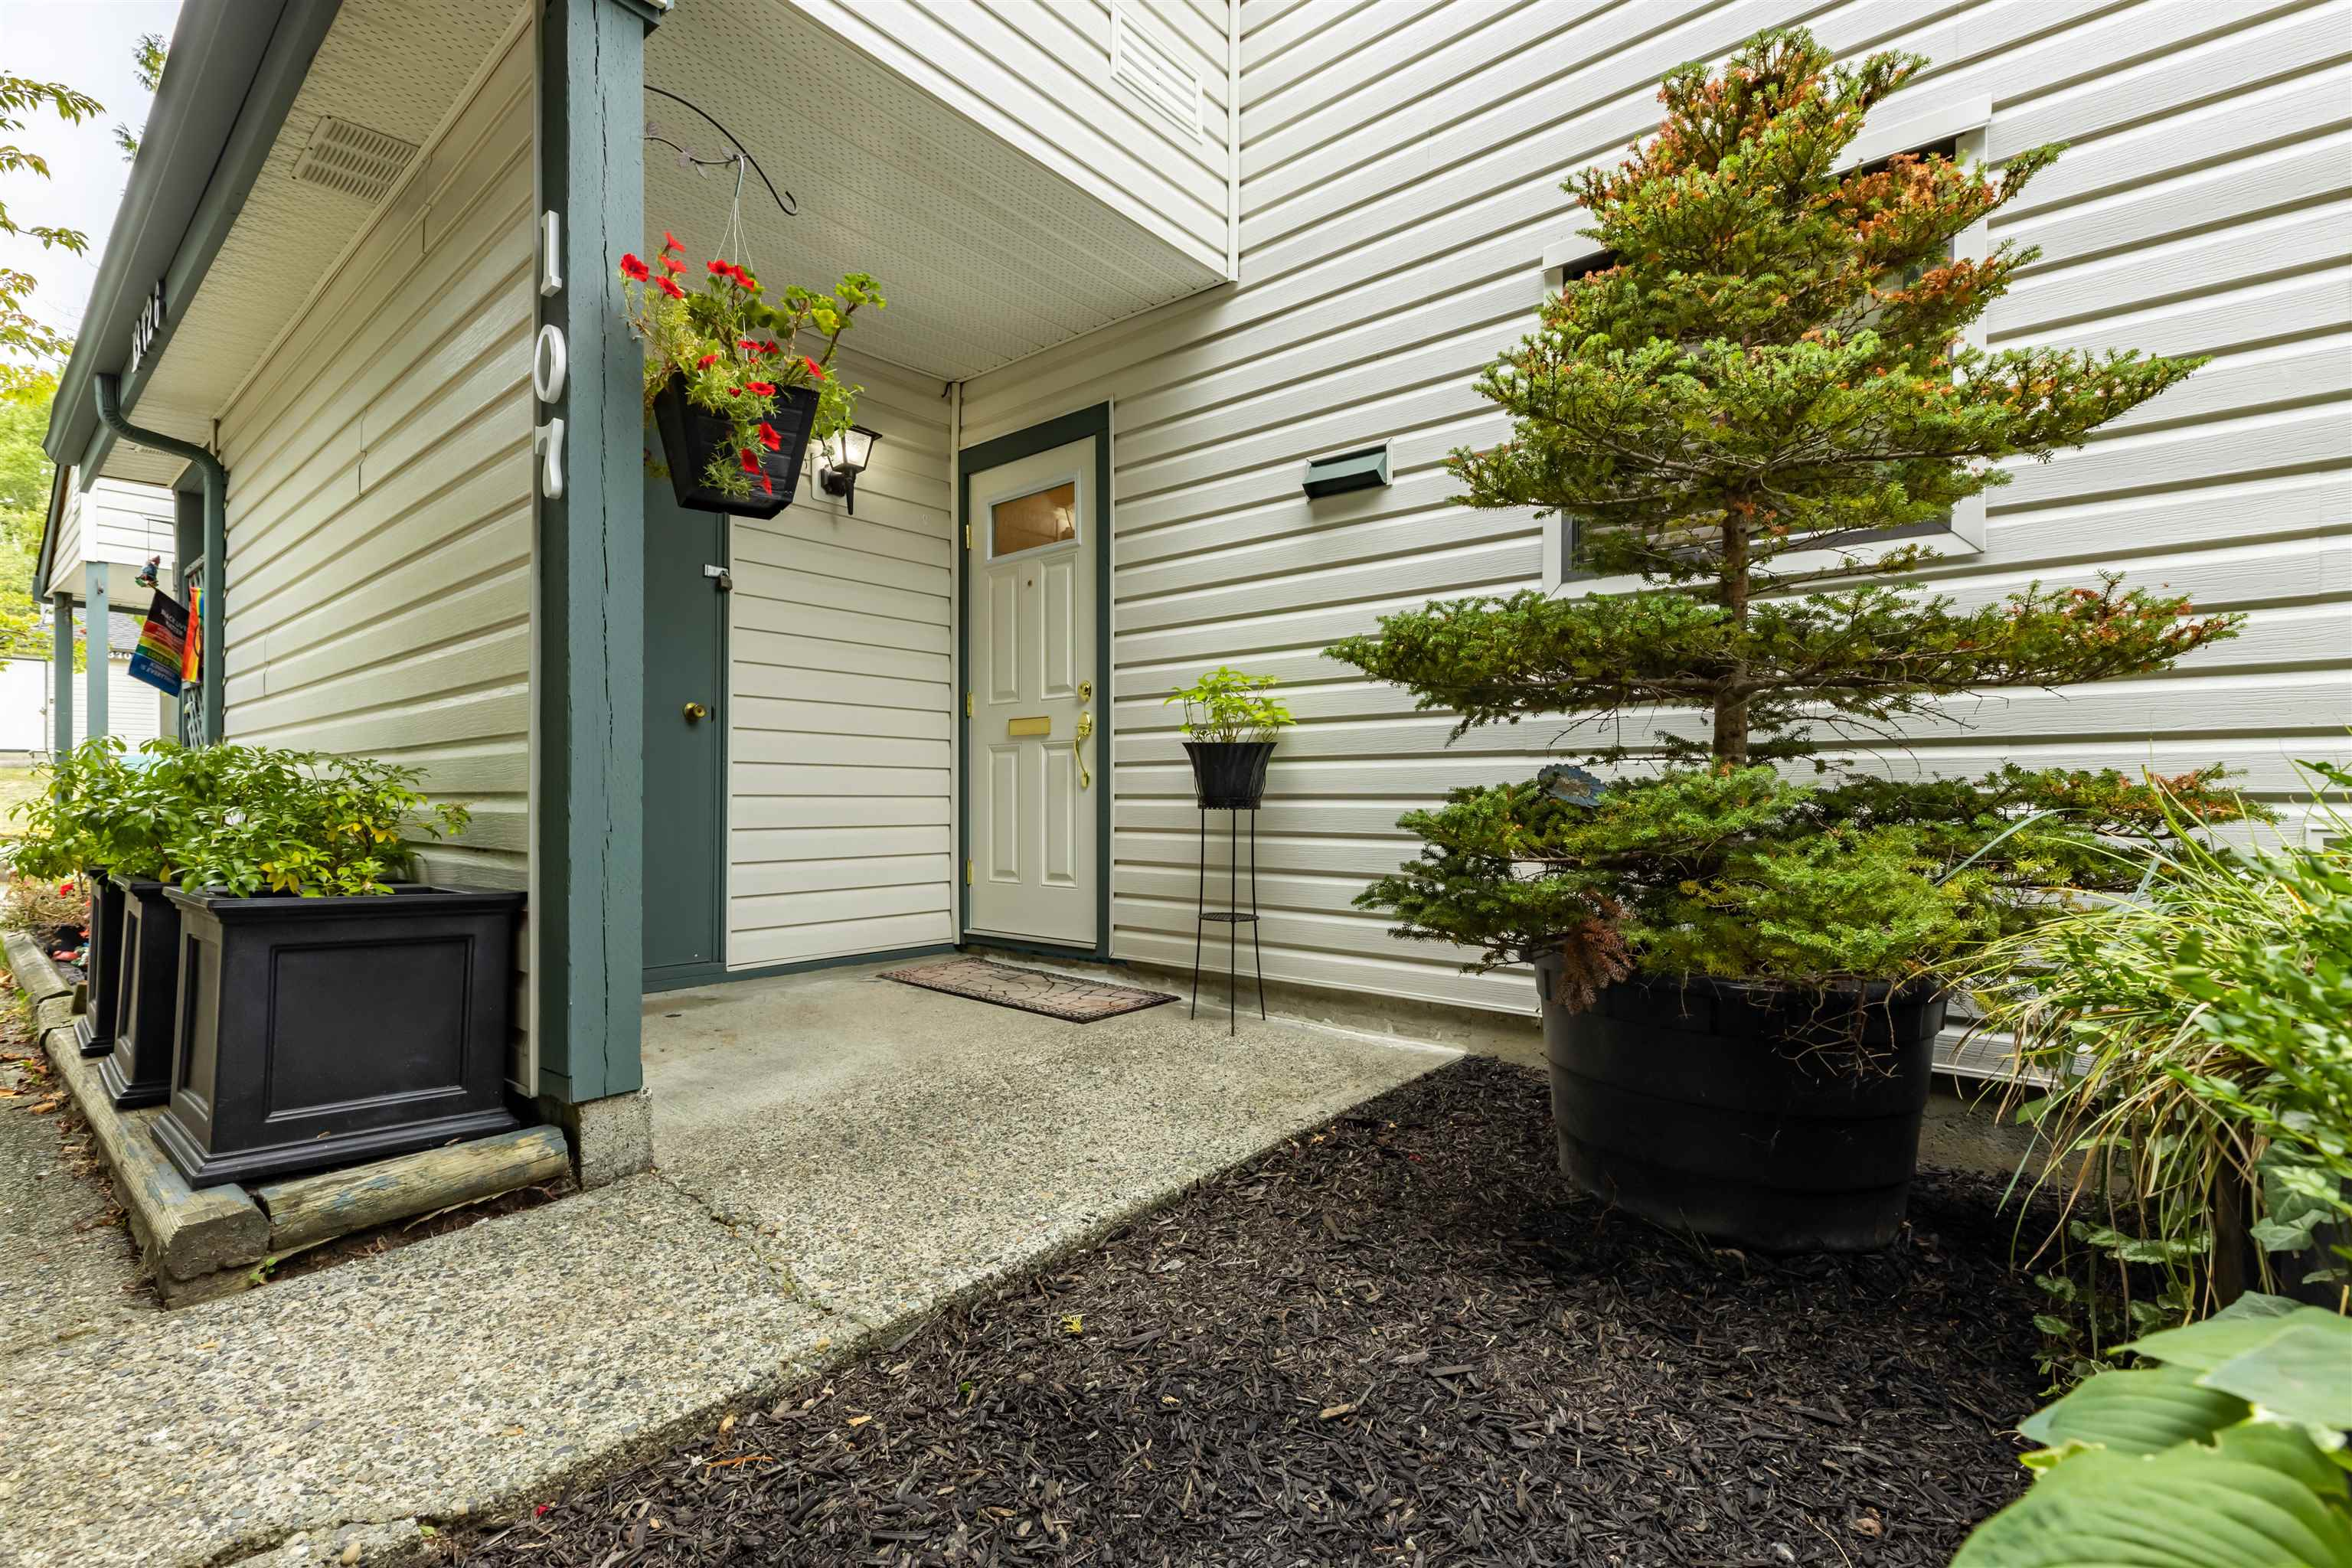 107 13726 67 AVENUE - East Newton Townhouse for sale, 3 Bedrooms (R2616694) - #24